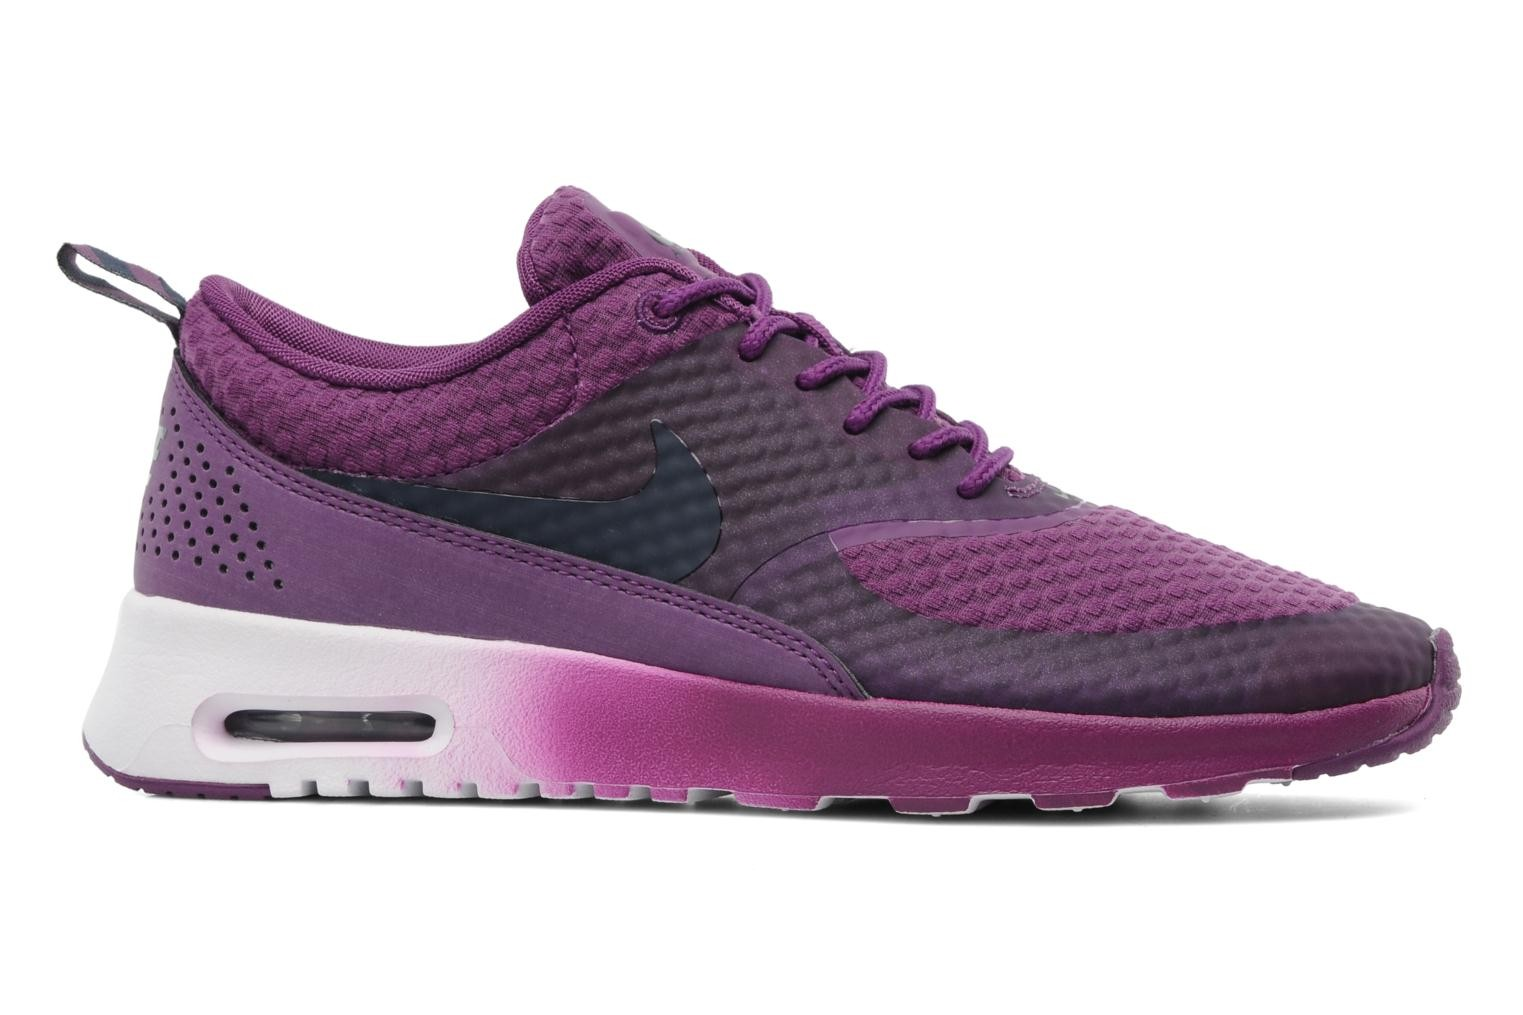 Womens Nike Air Max Thea Premium Running Shoes Bright Grape/ Obsidian/Metallic Silver/White - Style 616723 500